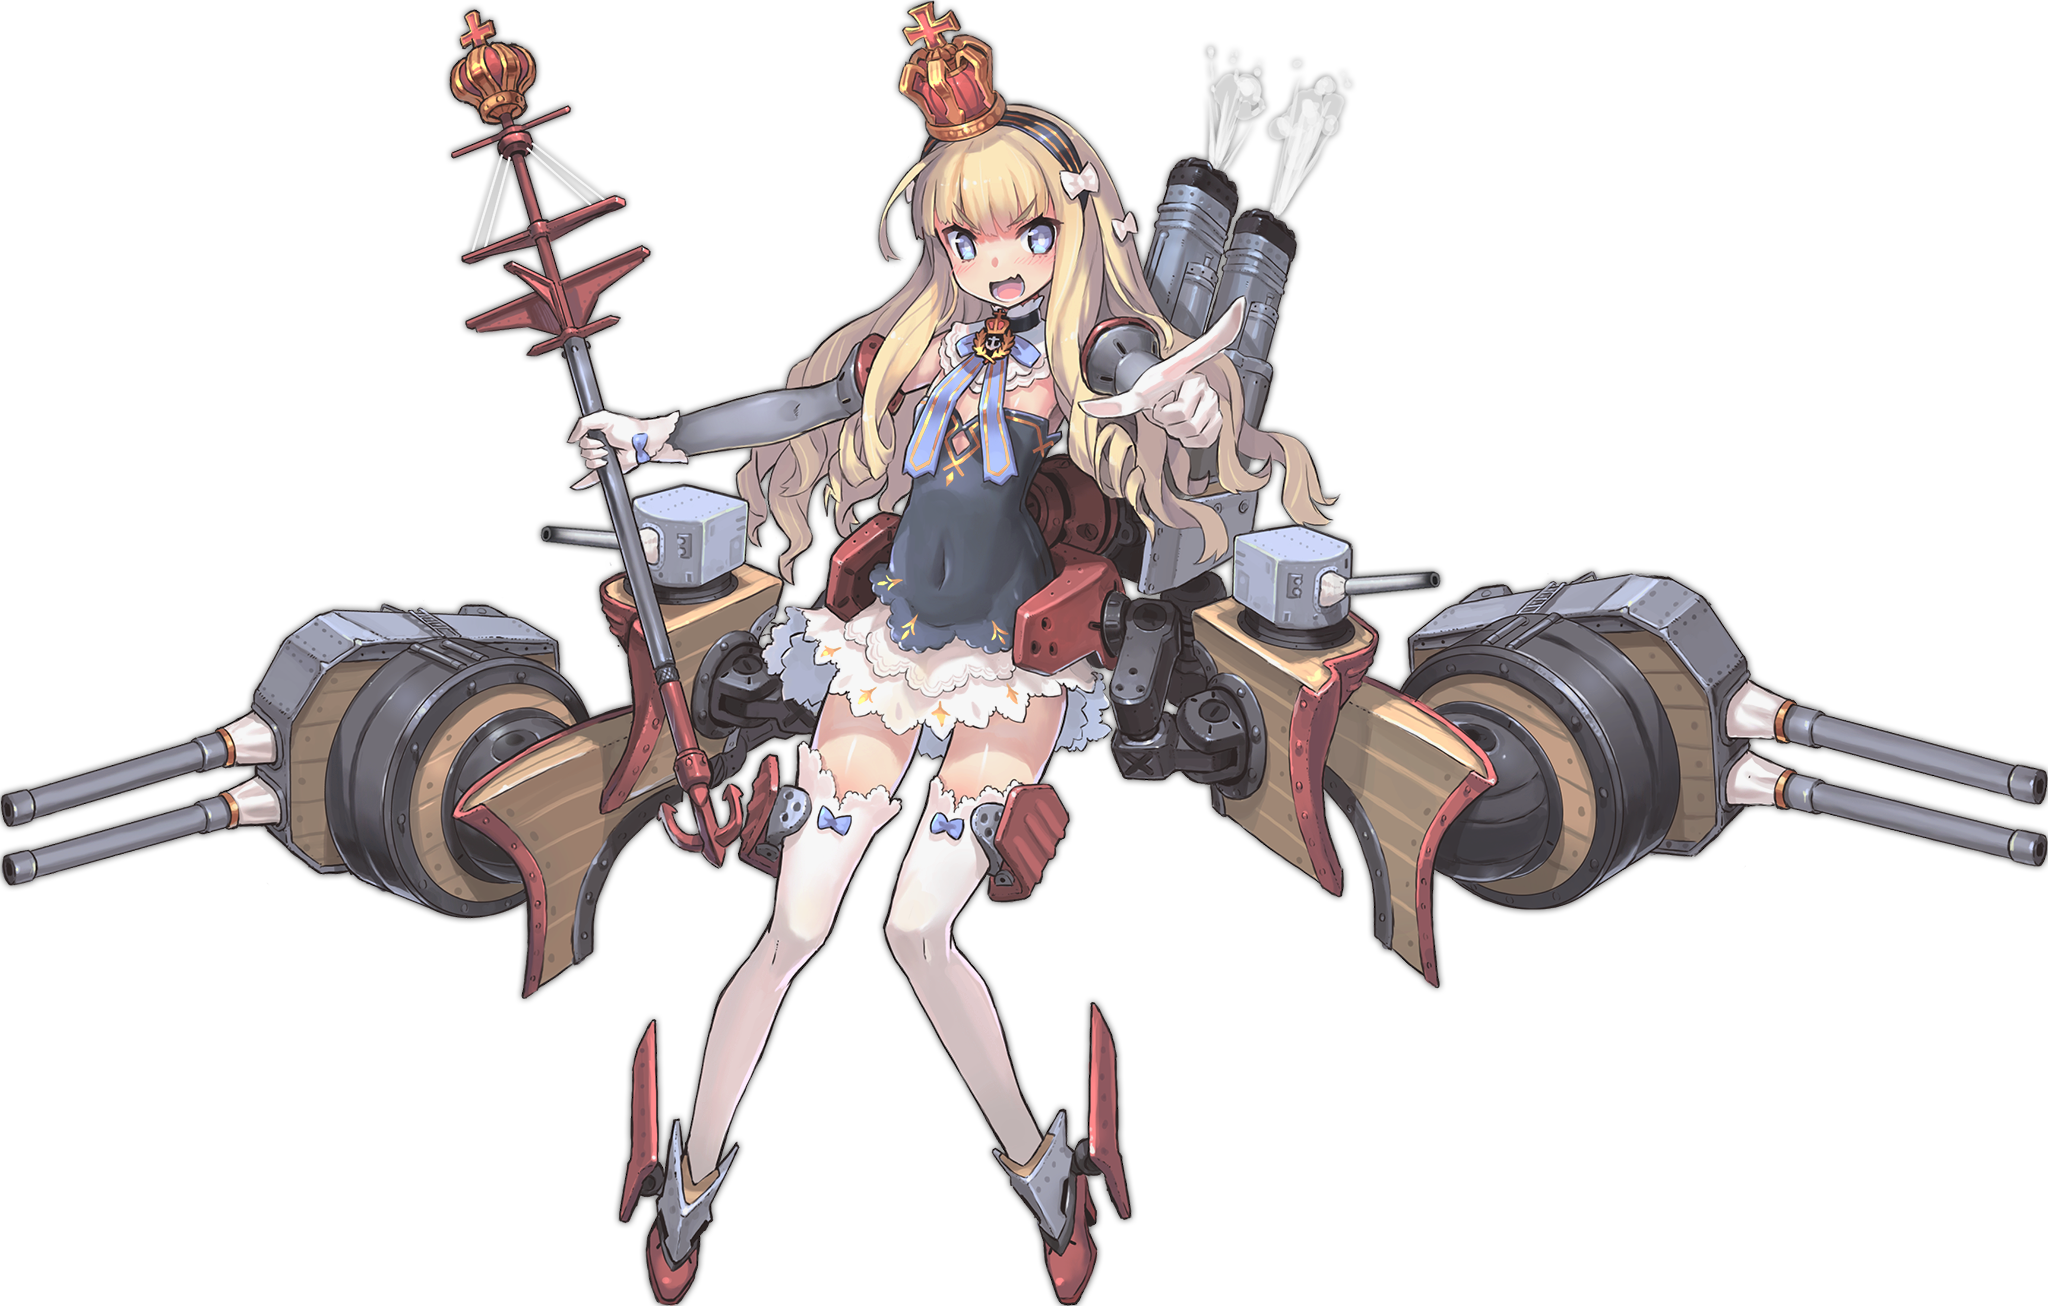 Queen Elizabeth Azur Lane All Worlds Alliance Wiki Fandom See over 2,856 belfast (azur lane) images on danbooru. queen elizabeth azur lane all